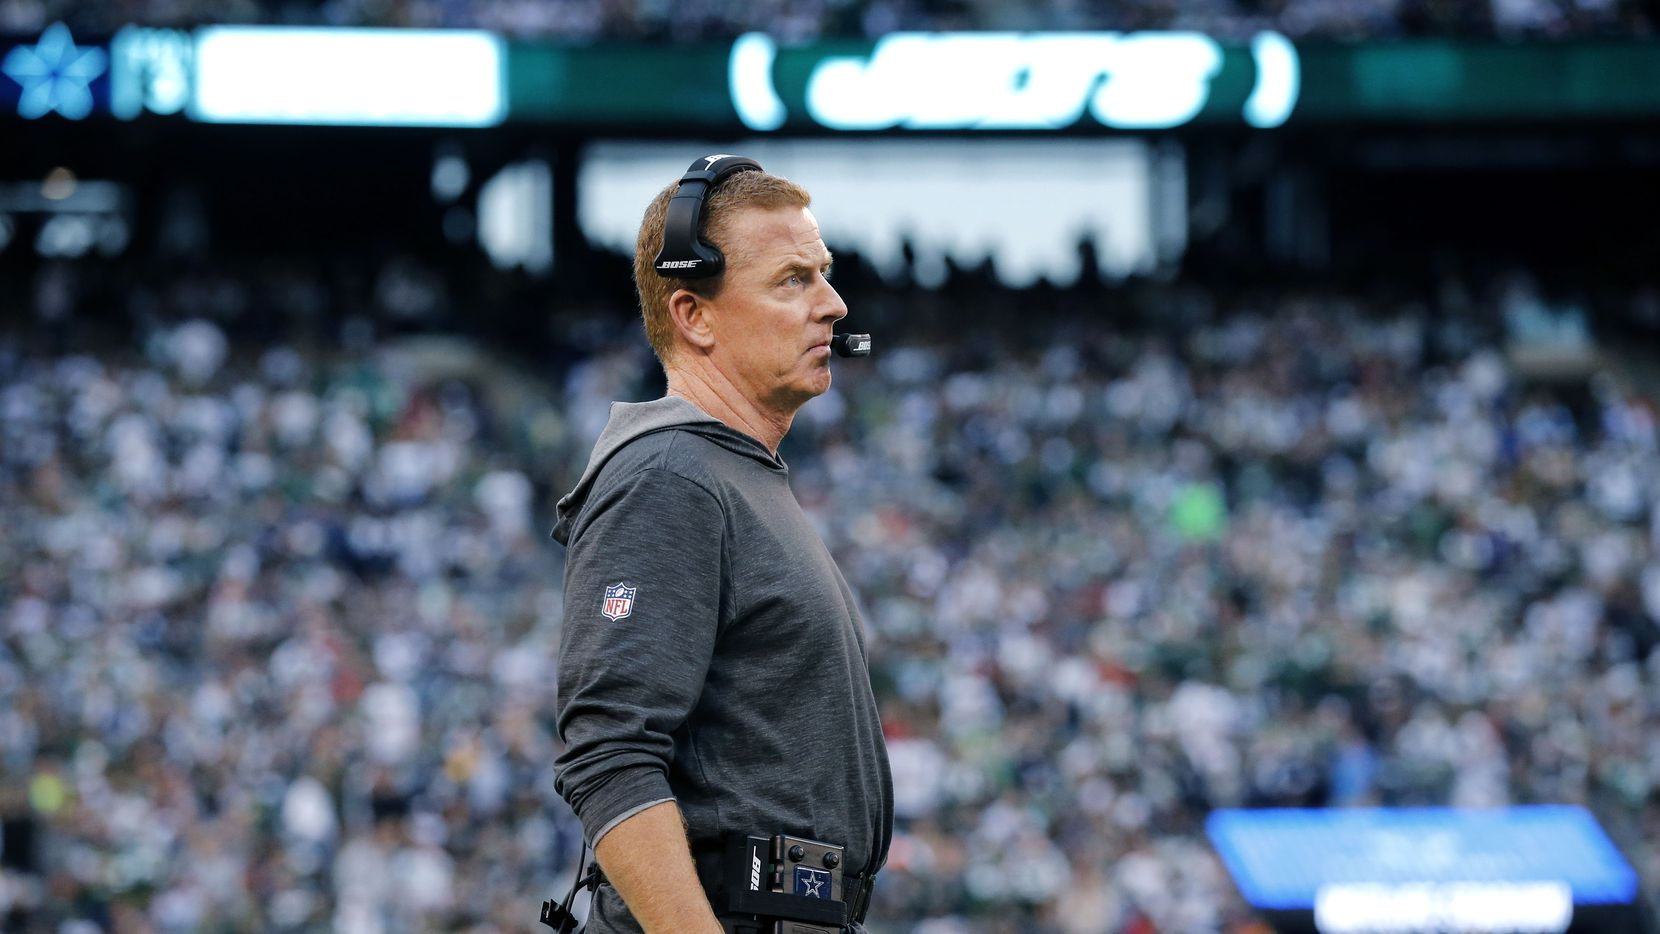 Dallas Cowboys head coach Jason Garrett watches his team play the New York Jets during the first half at MetLife Stadium in East Rutherford, New Jersey, Sunday, October 13, 2019.